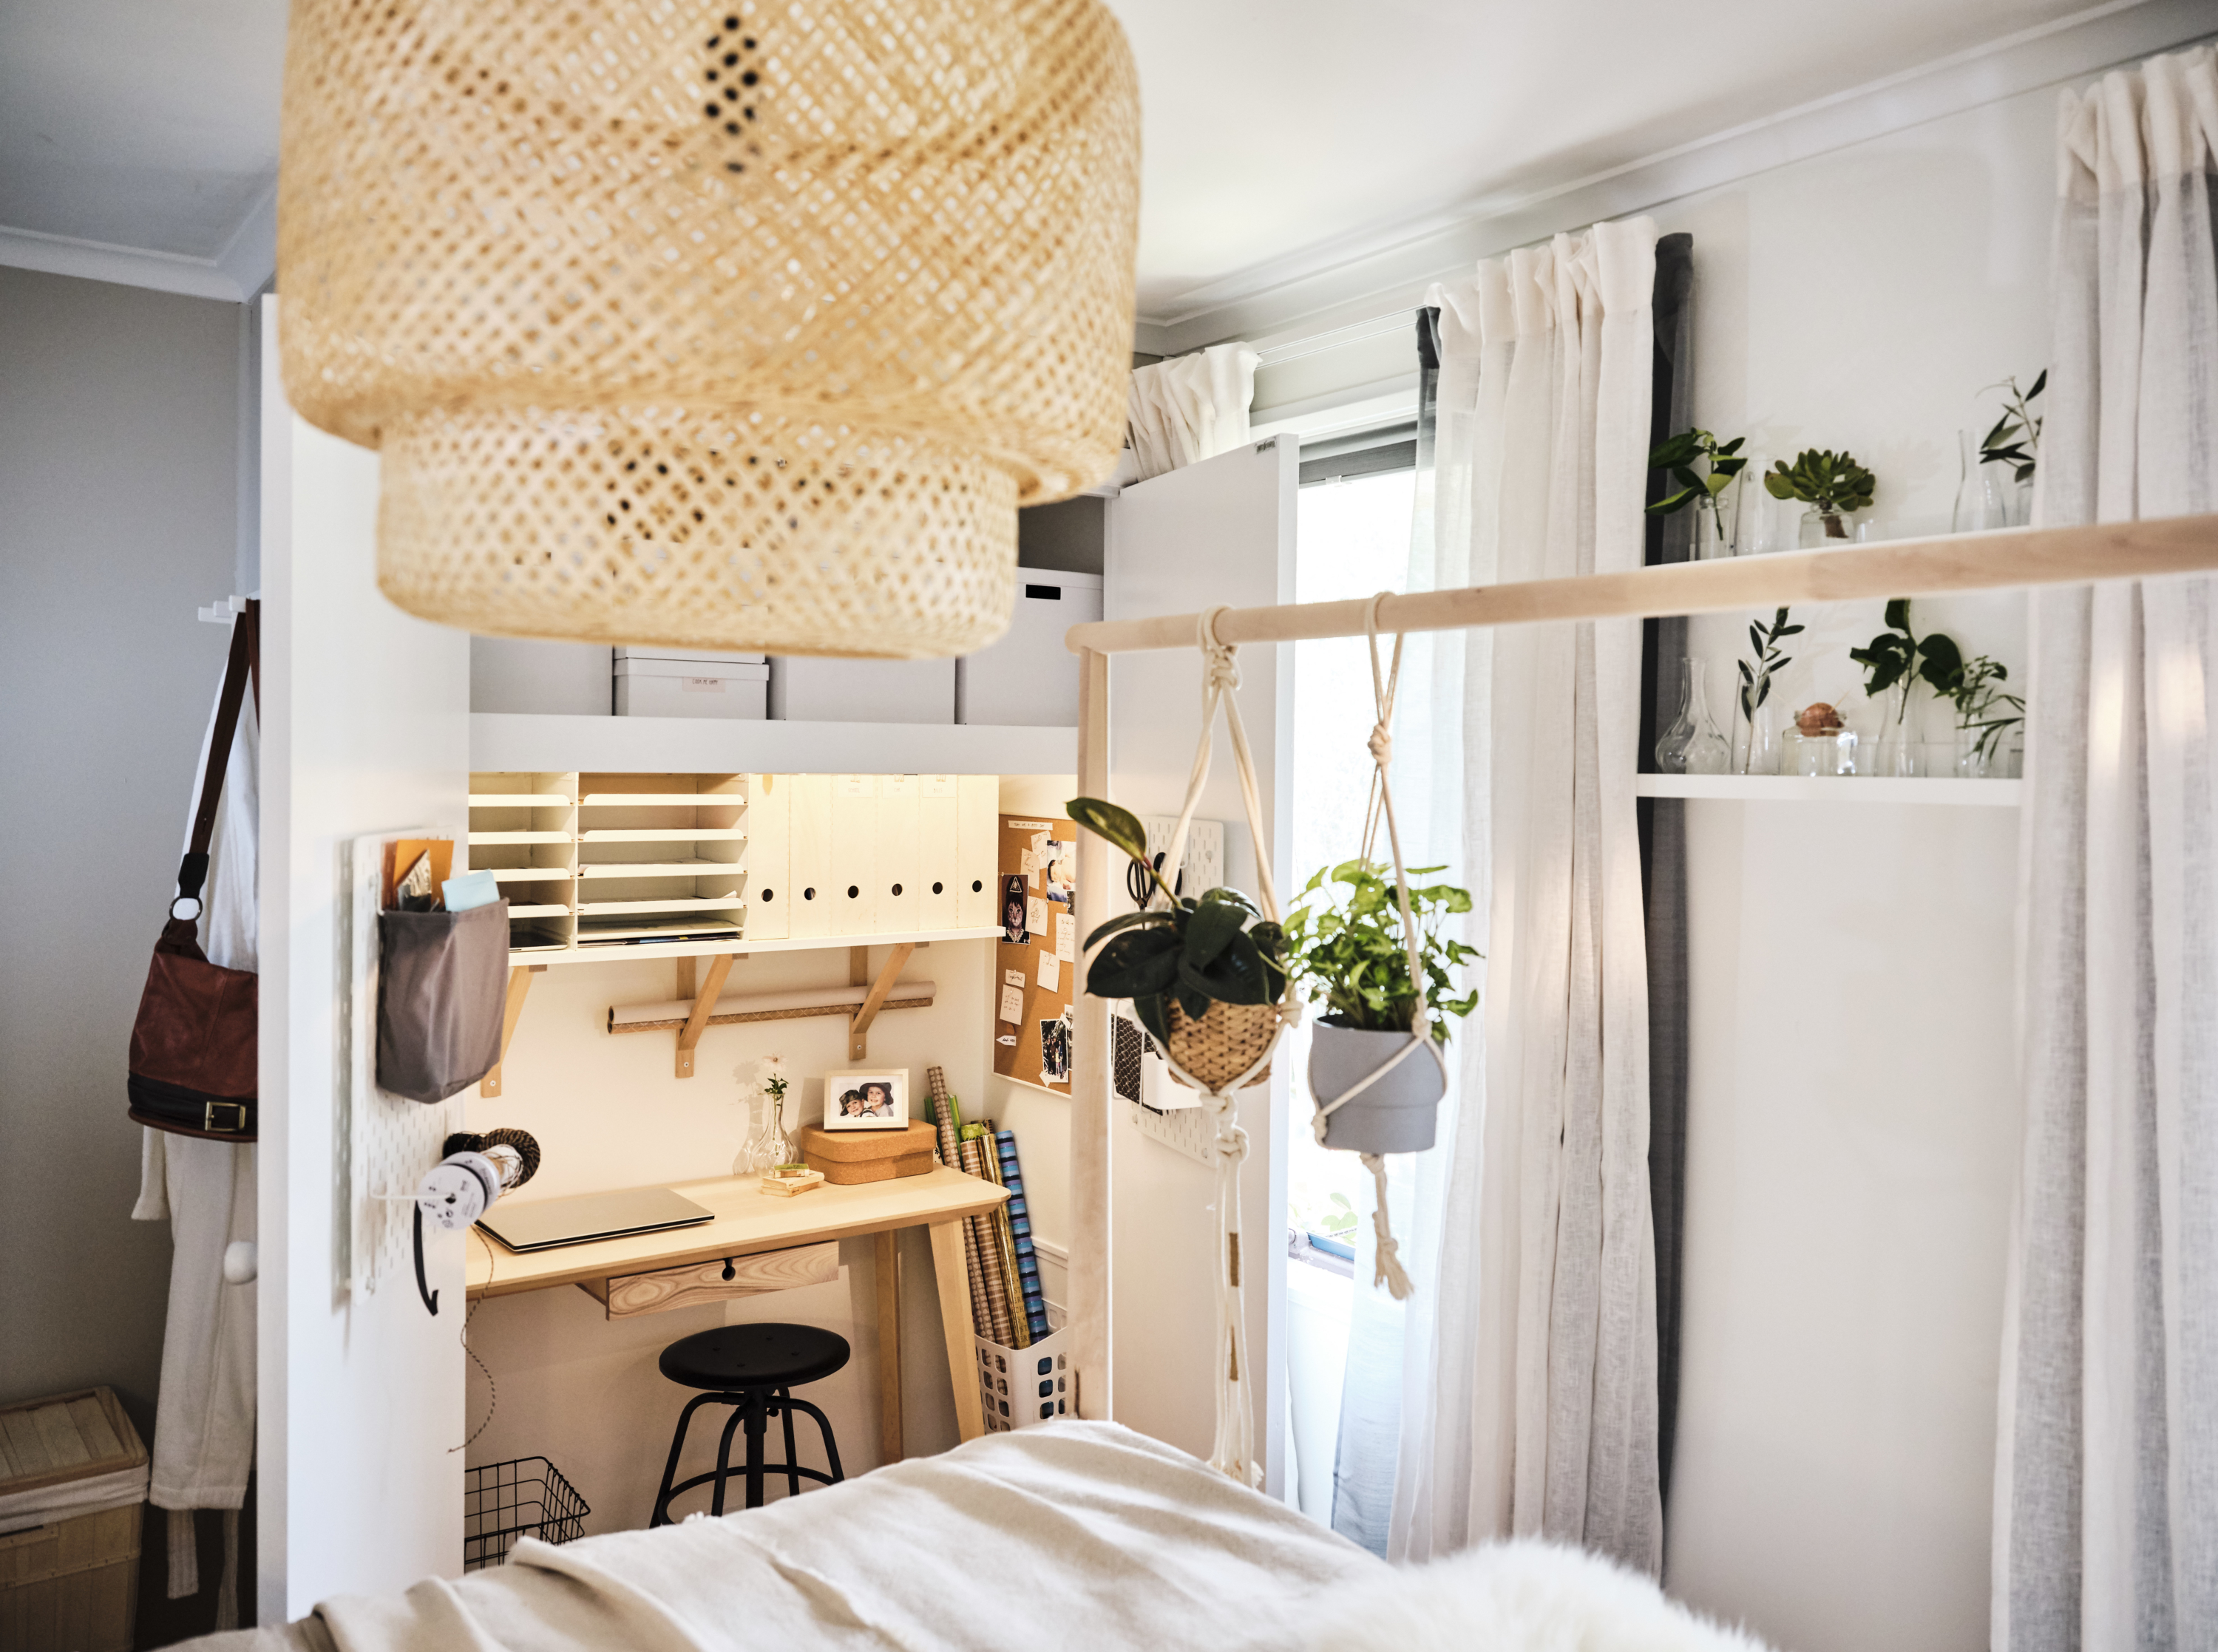 Ikea Bedroom Makeover Turns Wardrobe Into Office Nook The Interiors Addict